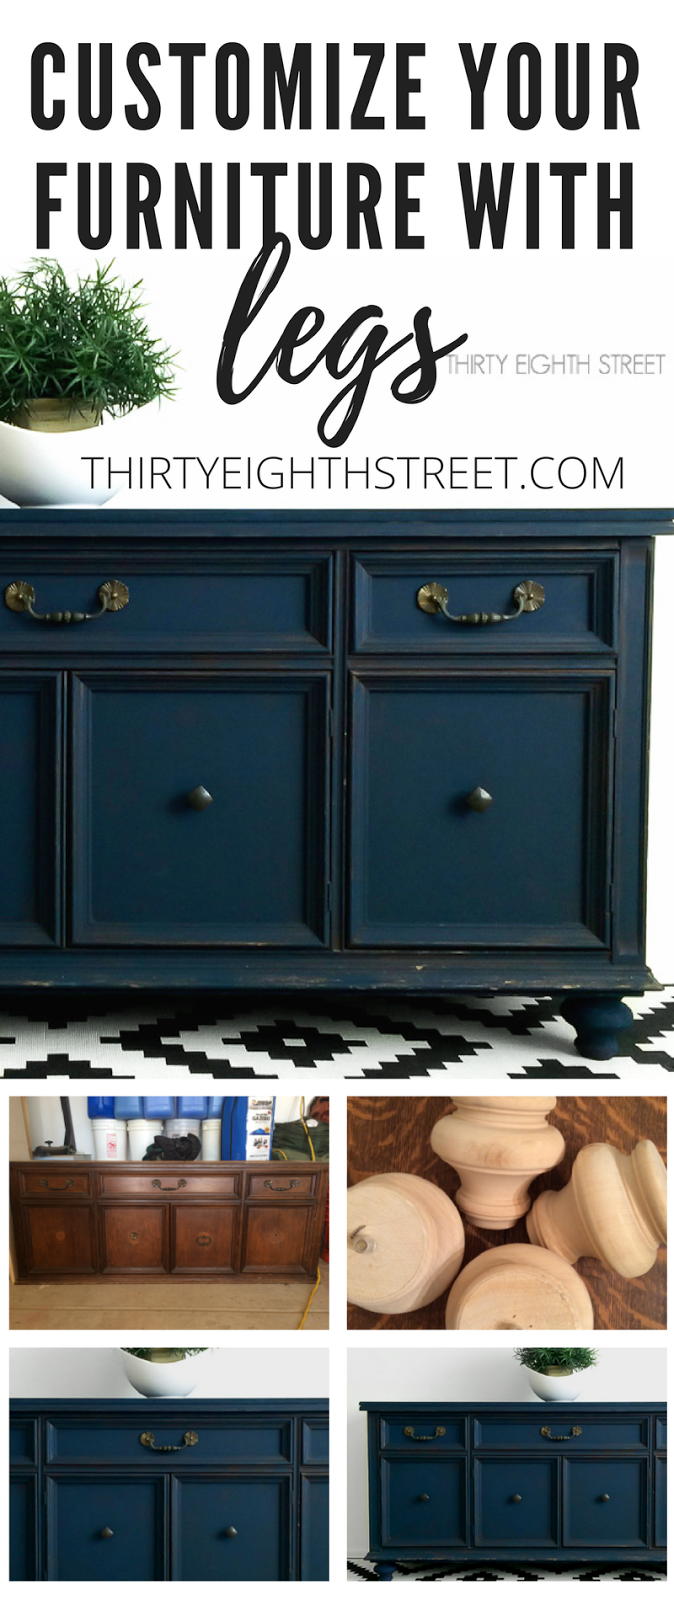 furniture tutorial, how to fix up furniture, how to add legs, furniture directions, customizing furniture, blue furniture, navy blue furniture